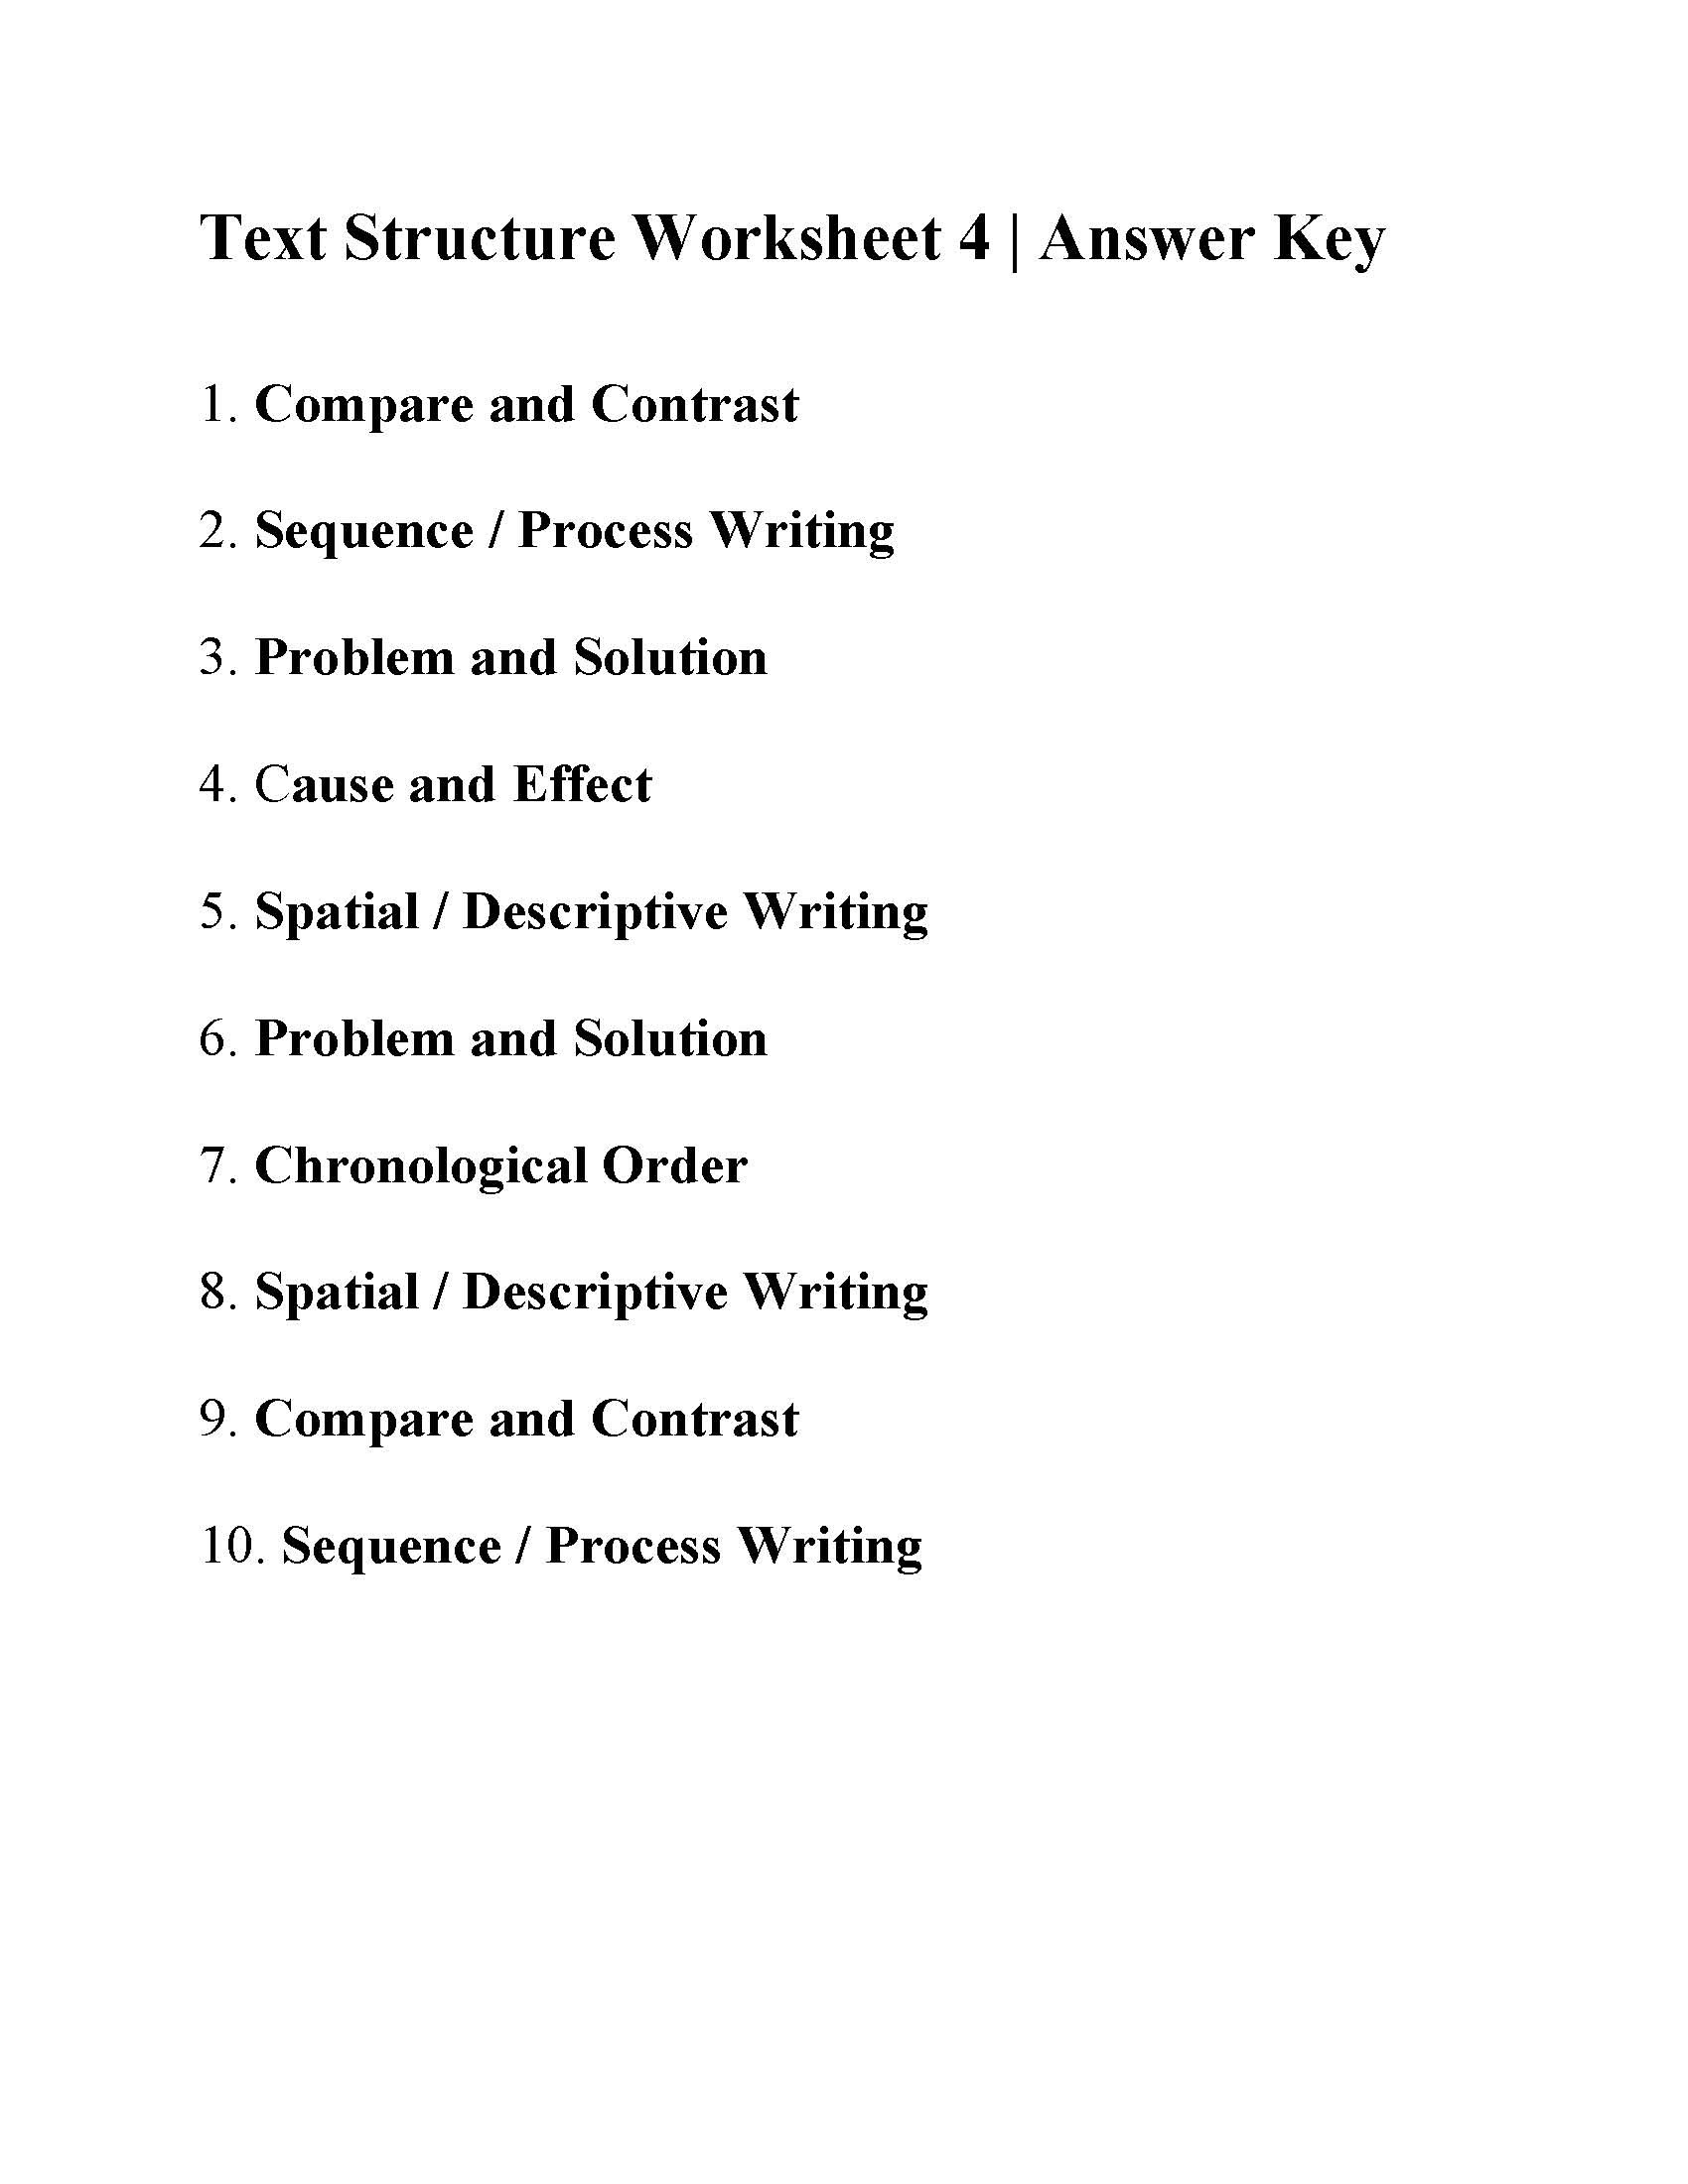 Text Structure 5th Grade Worksheets Text Structure Worksheet 4